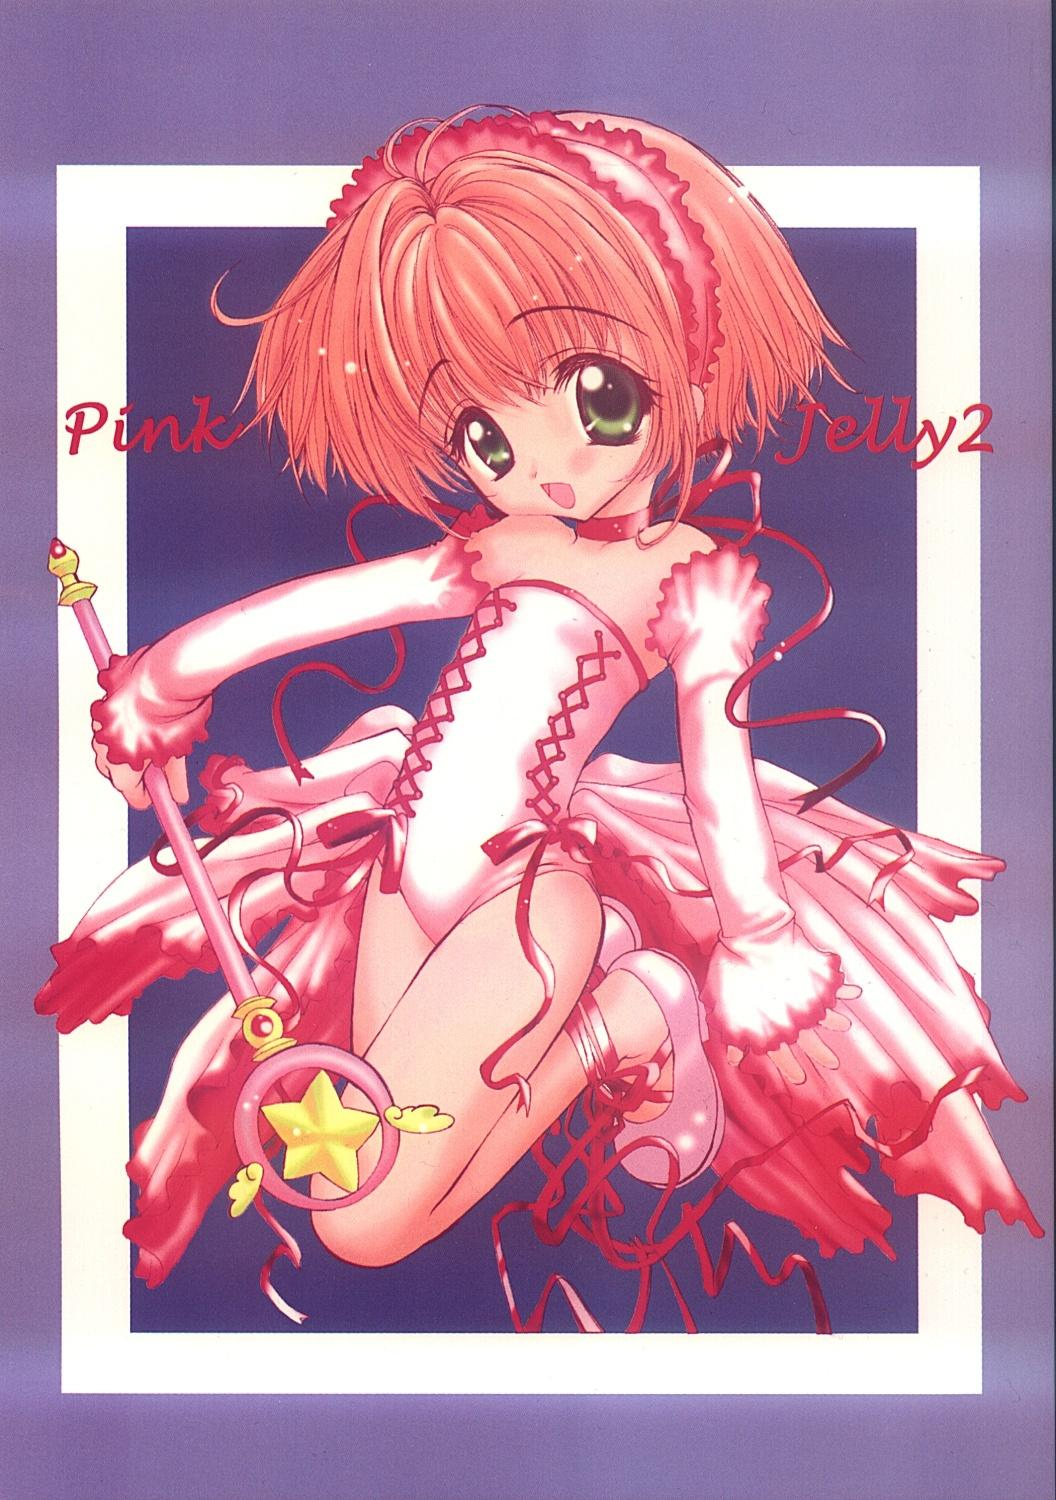 Pink Jelly 2 0